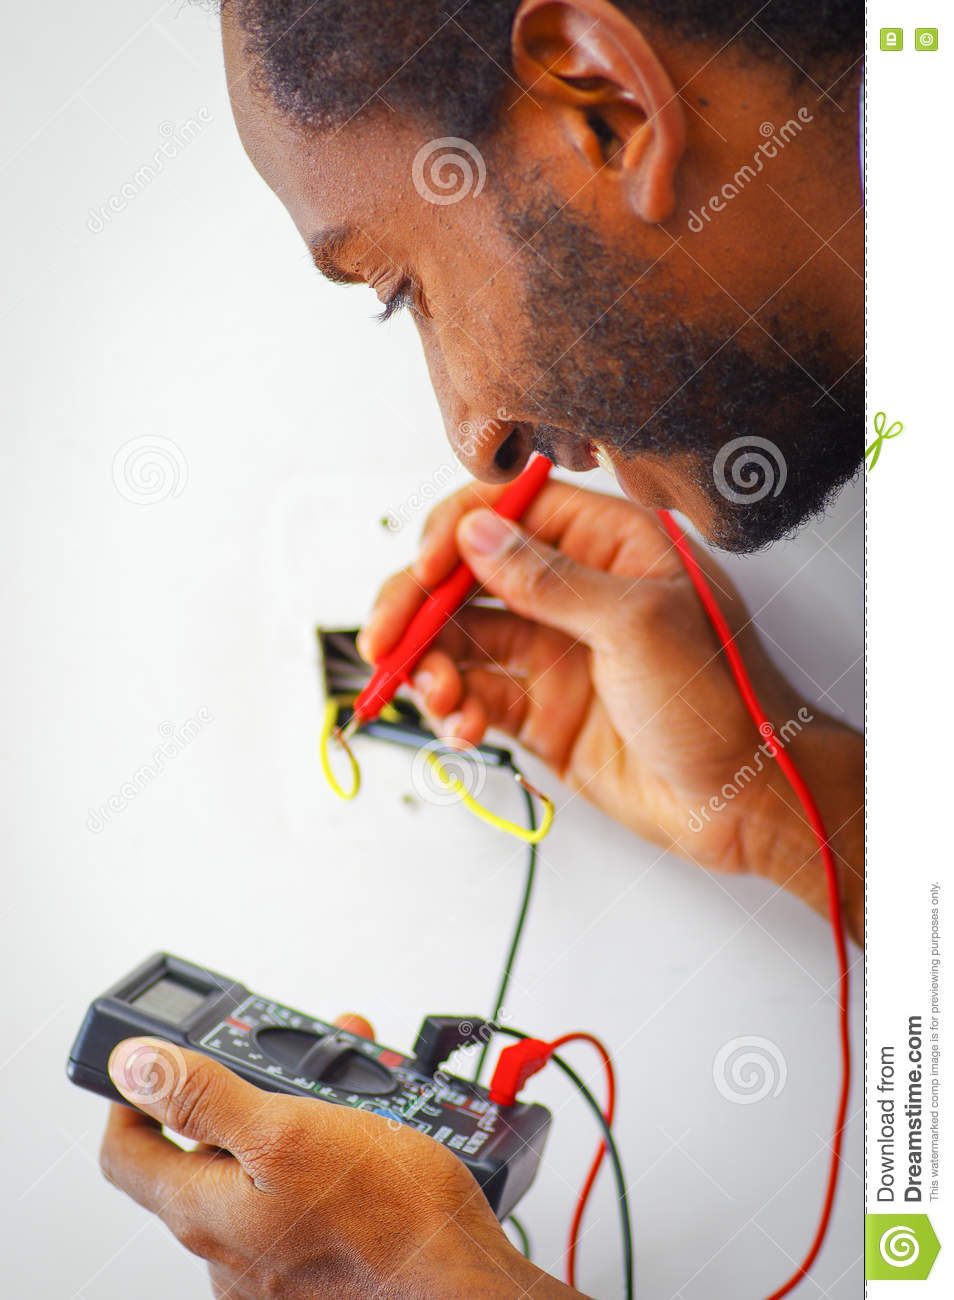 Man wearing white and blue shirt working on electrical wall socket wires using multimeter, electrician concept